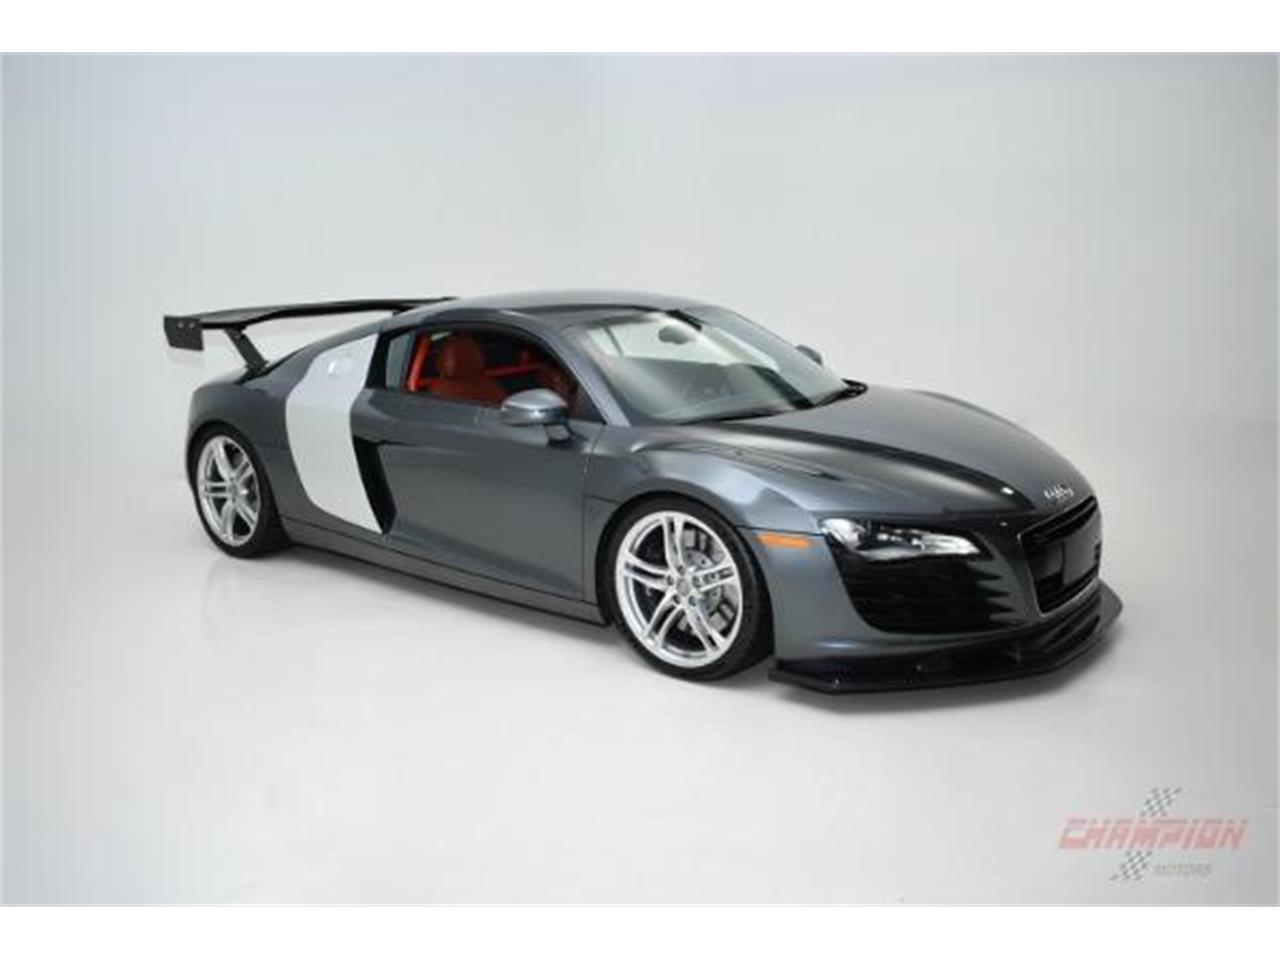 Large Picture of '09 R8 located in Syosset New York - $84,888.00 - KO6N